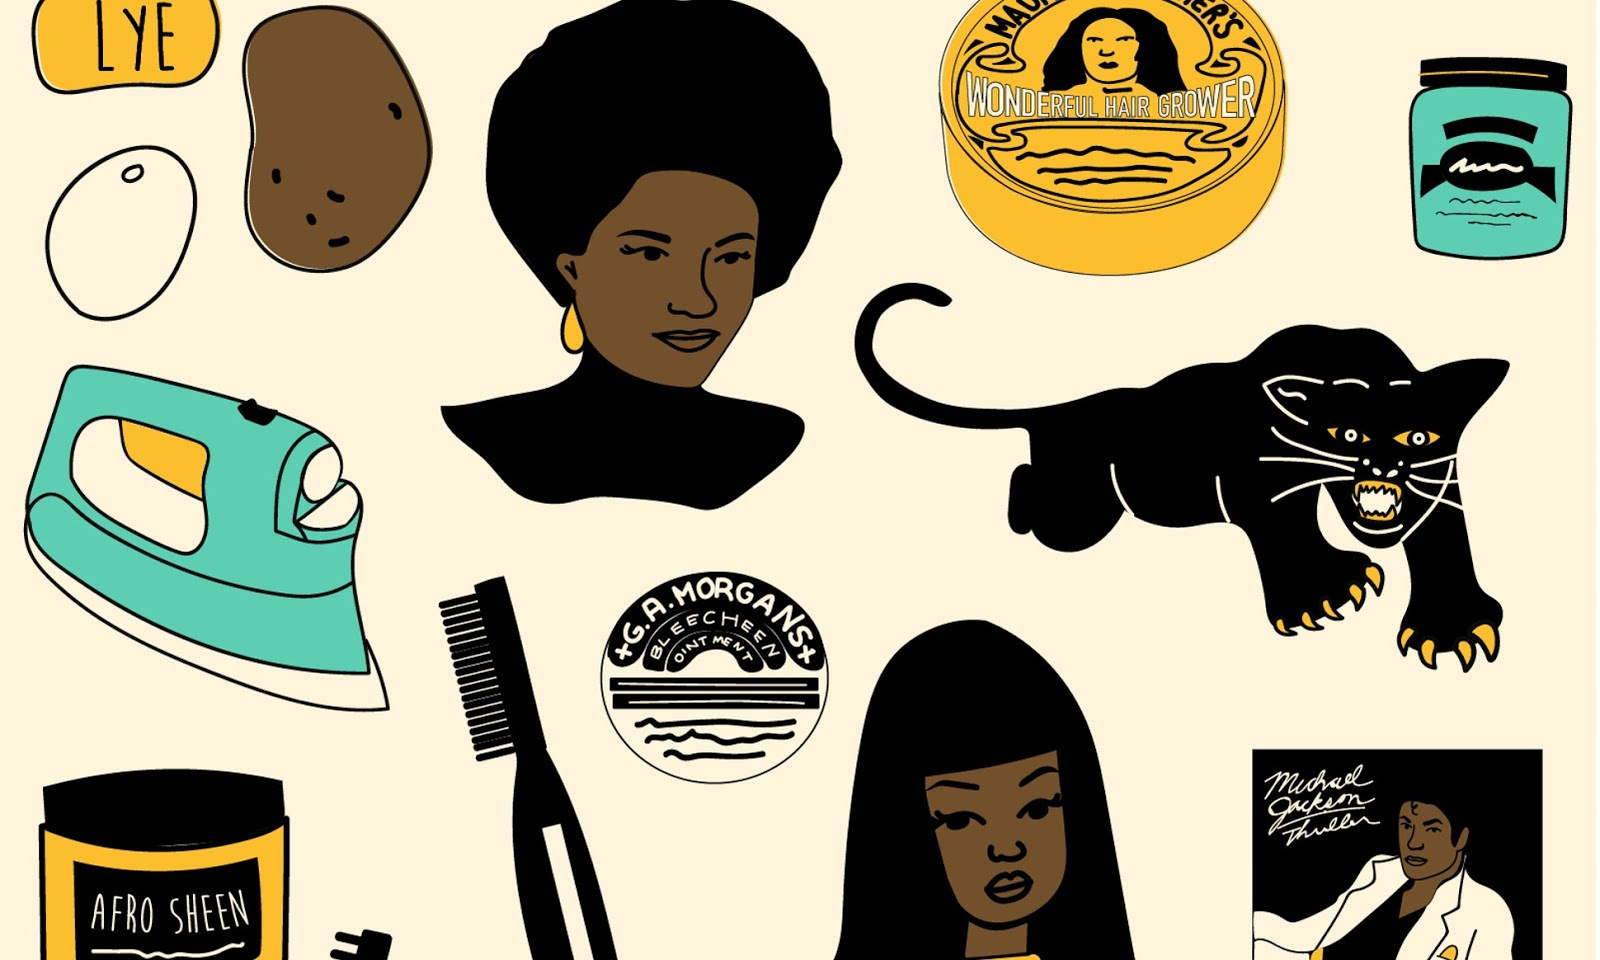 An illustration image showing an assortment of black hair products and, an image of a black woman with an afro.